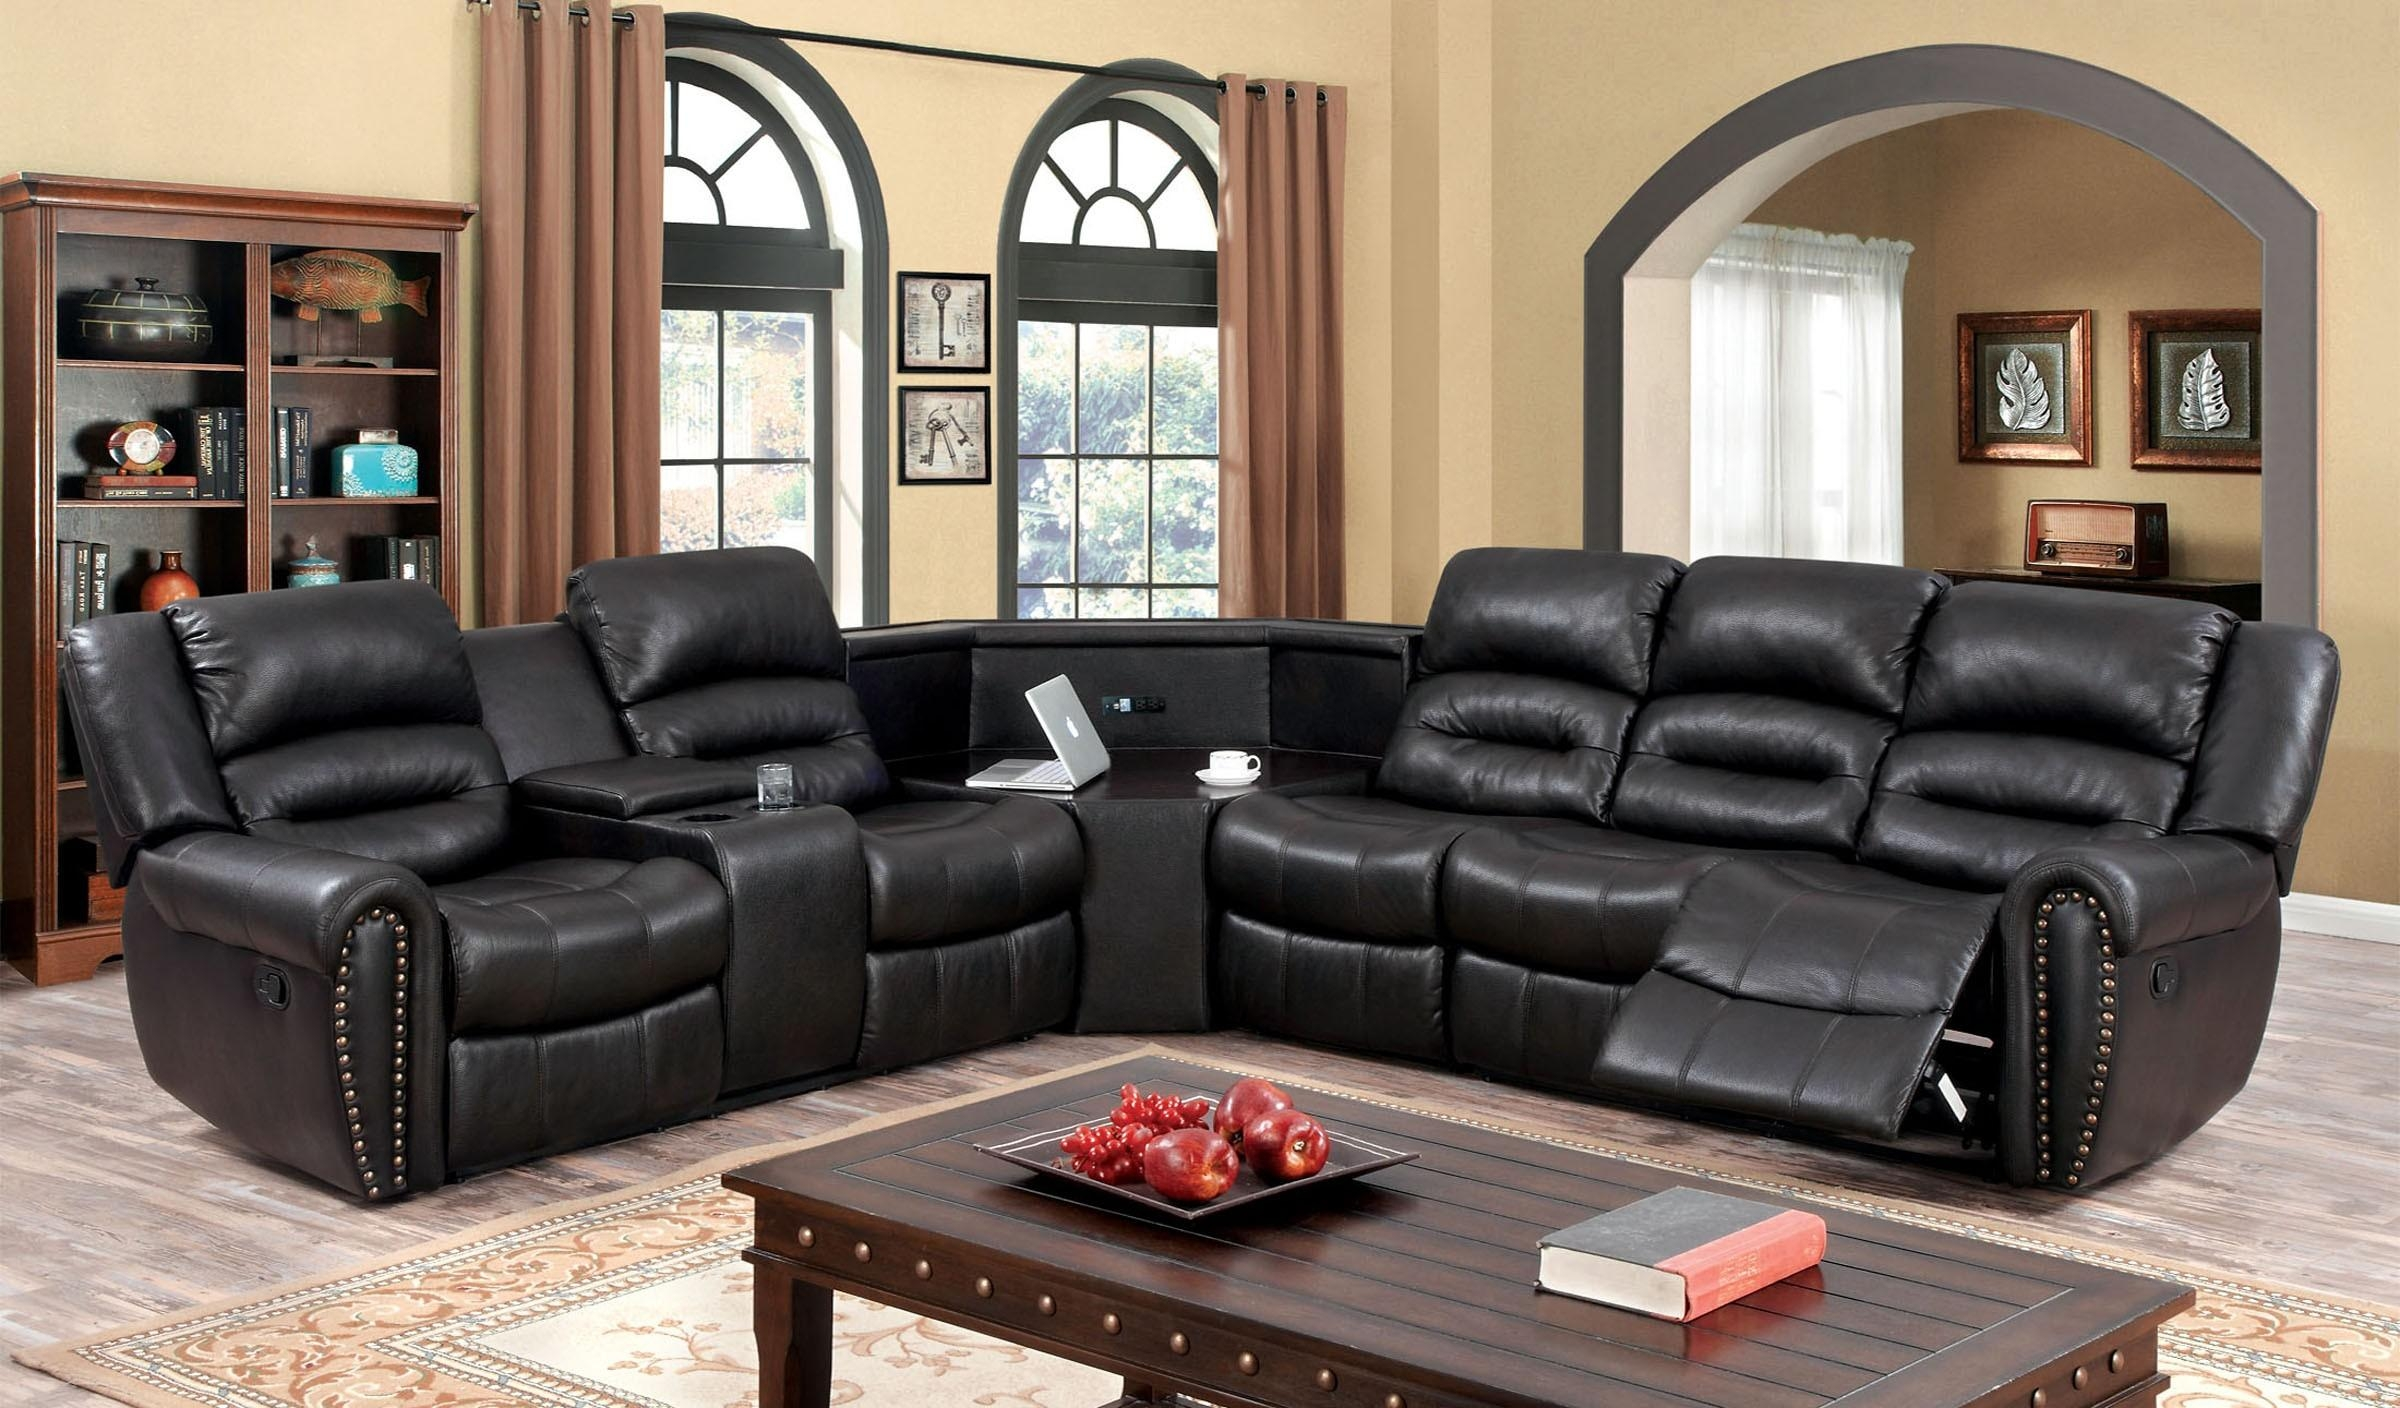 Sofas Center : Brown Leather Sectional Sofa With Chaise Sofas In Throughout Sectional With Cup Holders (Image 17 of 20)